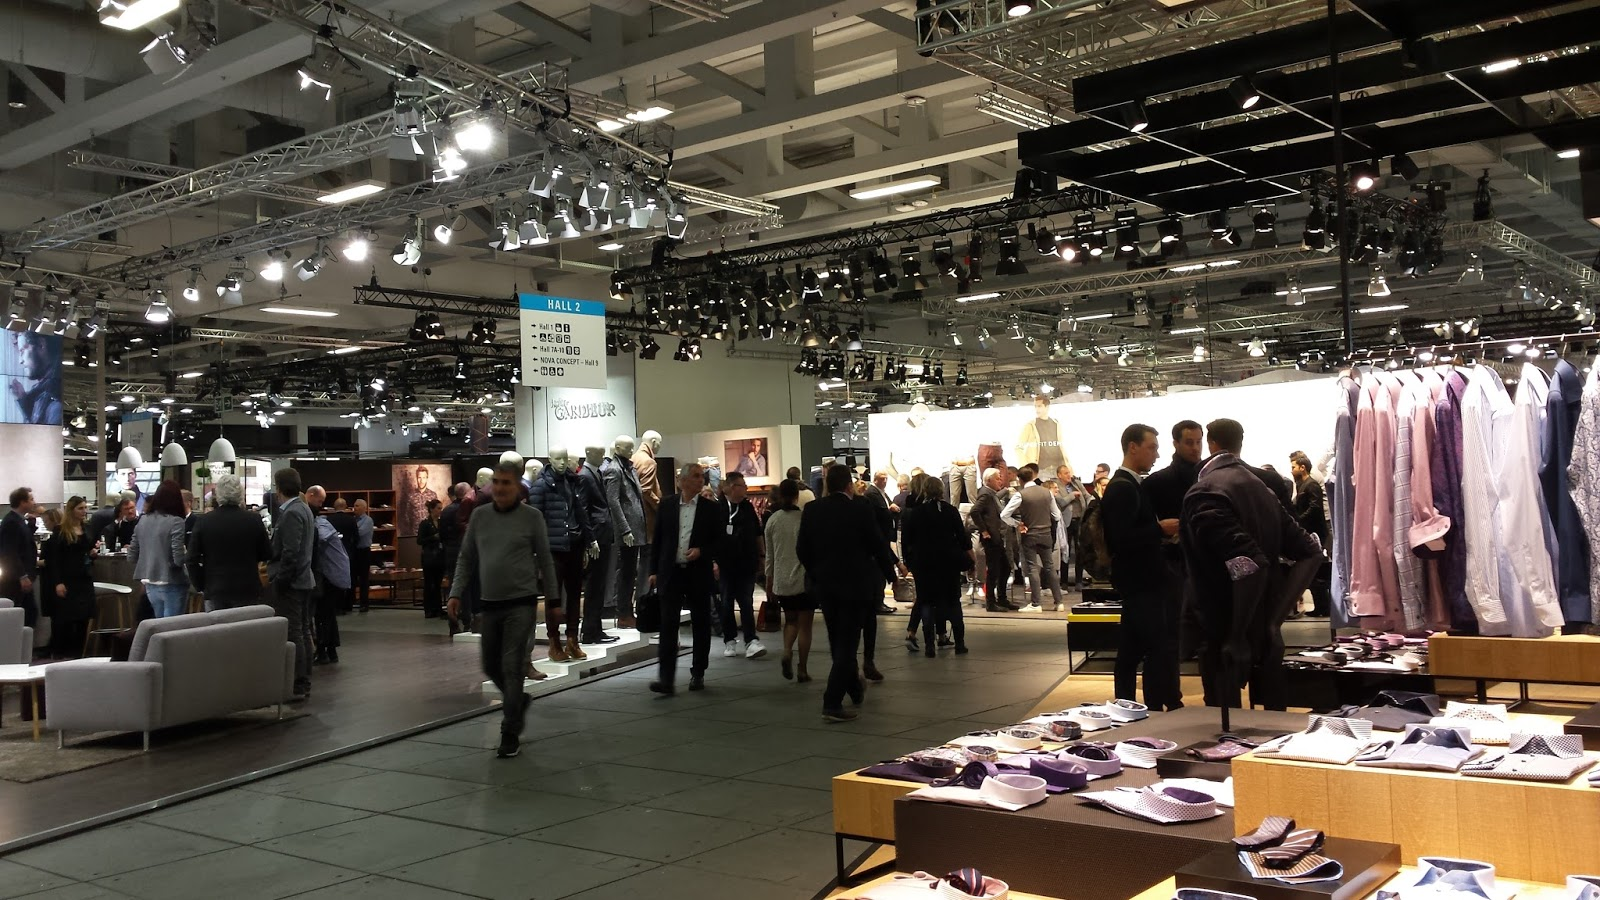 showroom Panorama Berlin 2017, relacja blogerki z Berlin Fashion Week styczeń 2017